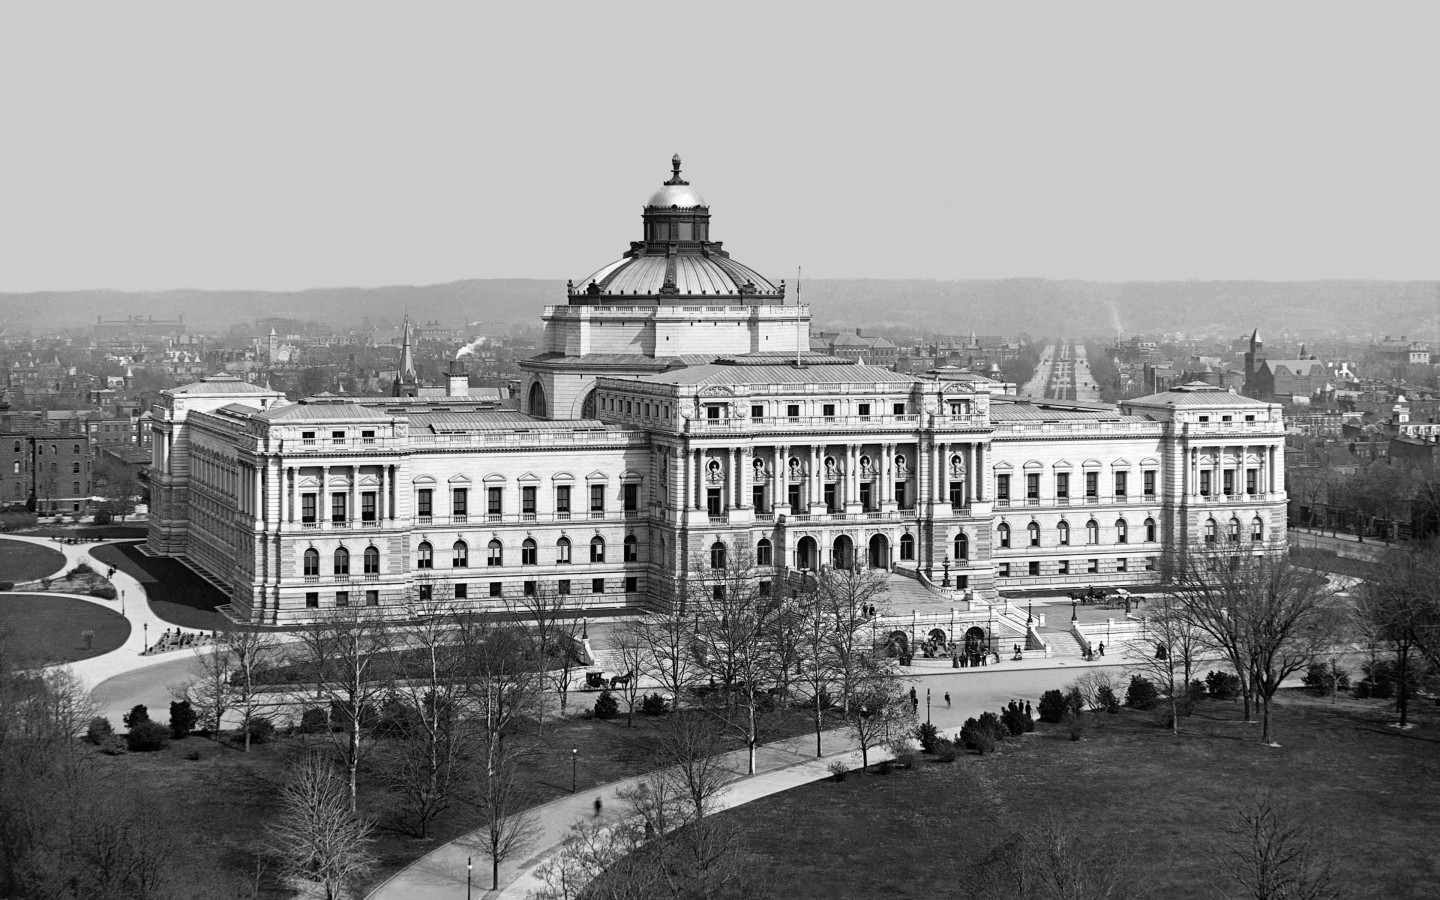 Thomas Jefferson Building, year 1902, Washington, D.C. Wallpaper for Desktop 1440x900